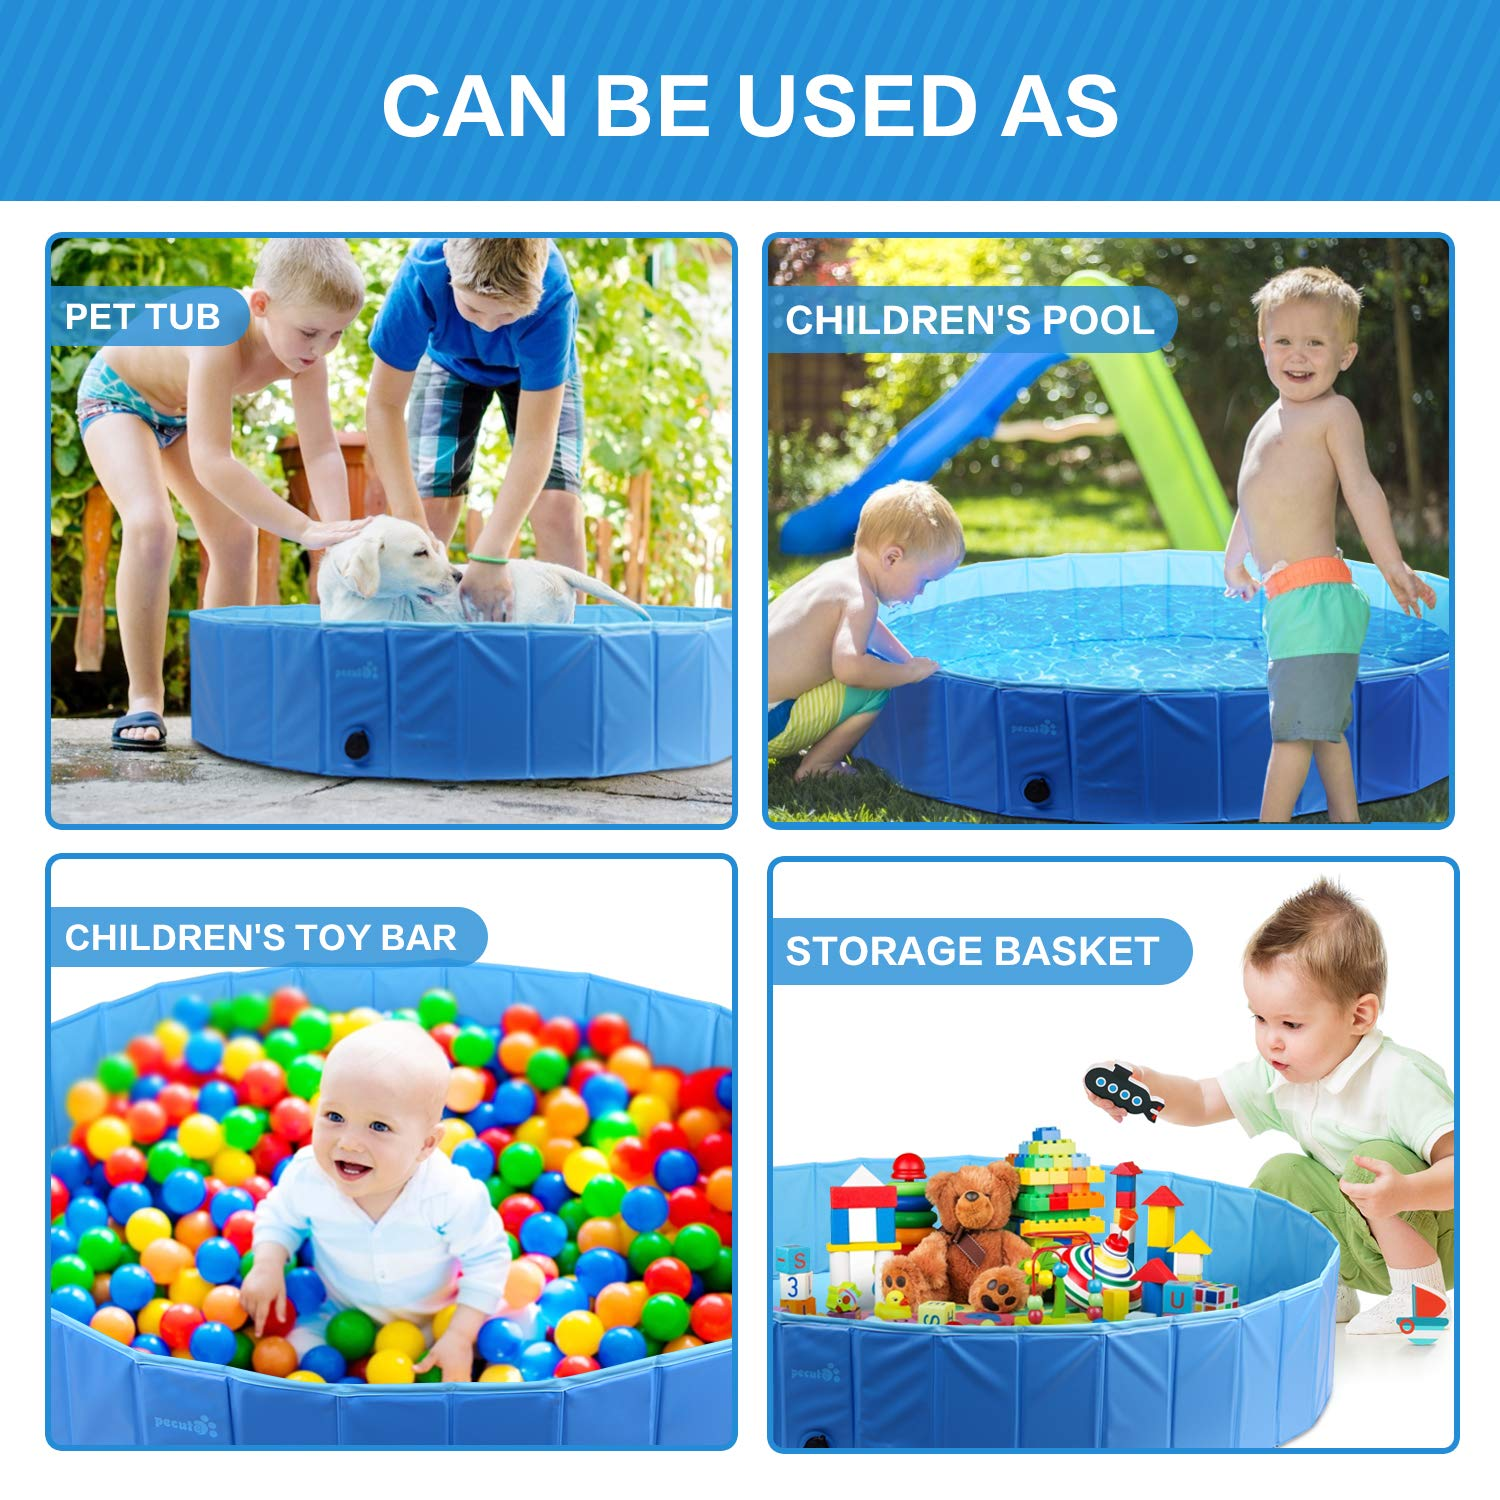 Pecute Dog Pool PVC Outdoor Pool Bathing Tub Portable Pet Playing Pool for Dogs Cats and Kids -3 XS (23.6\